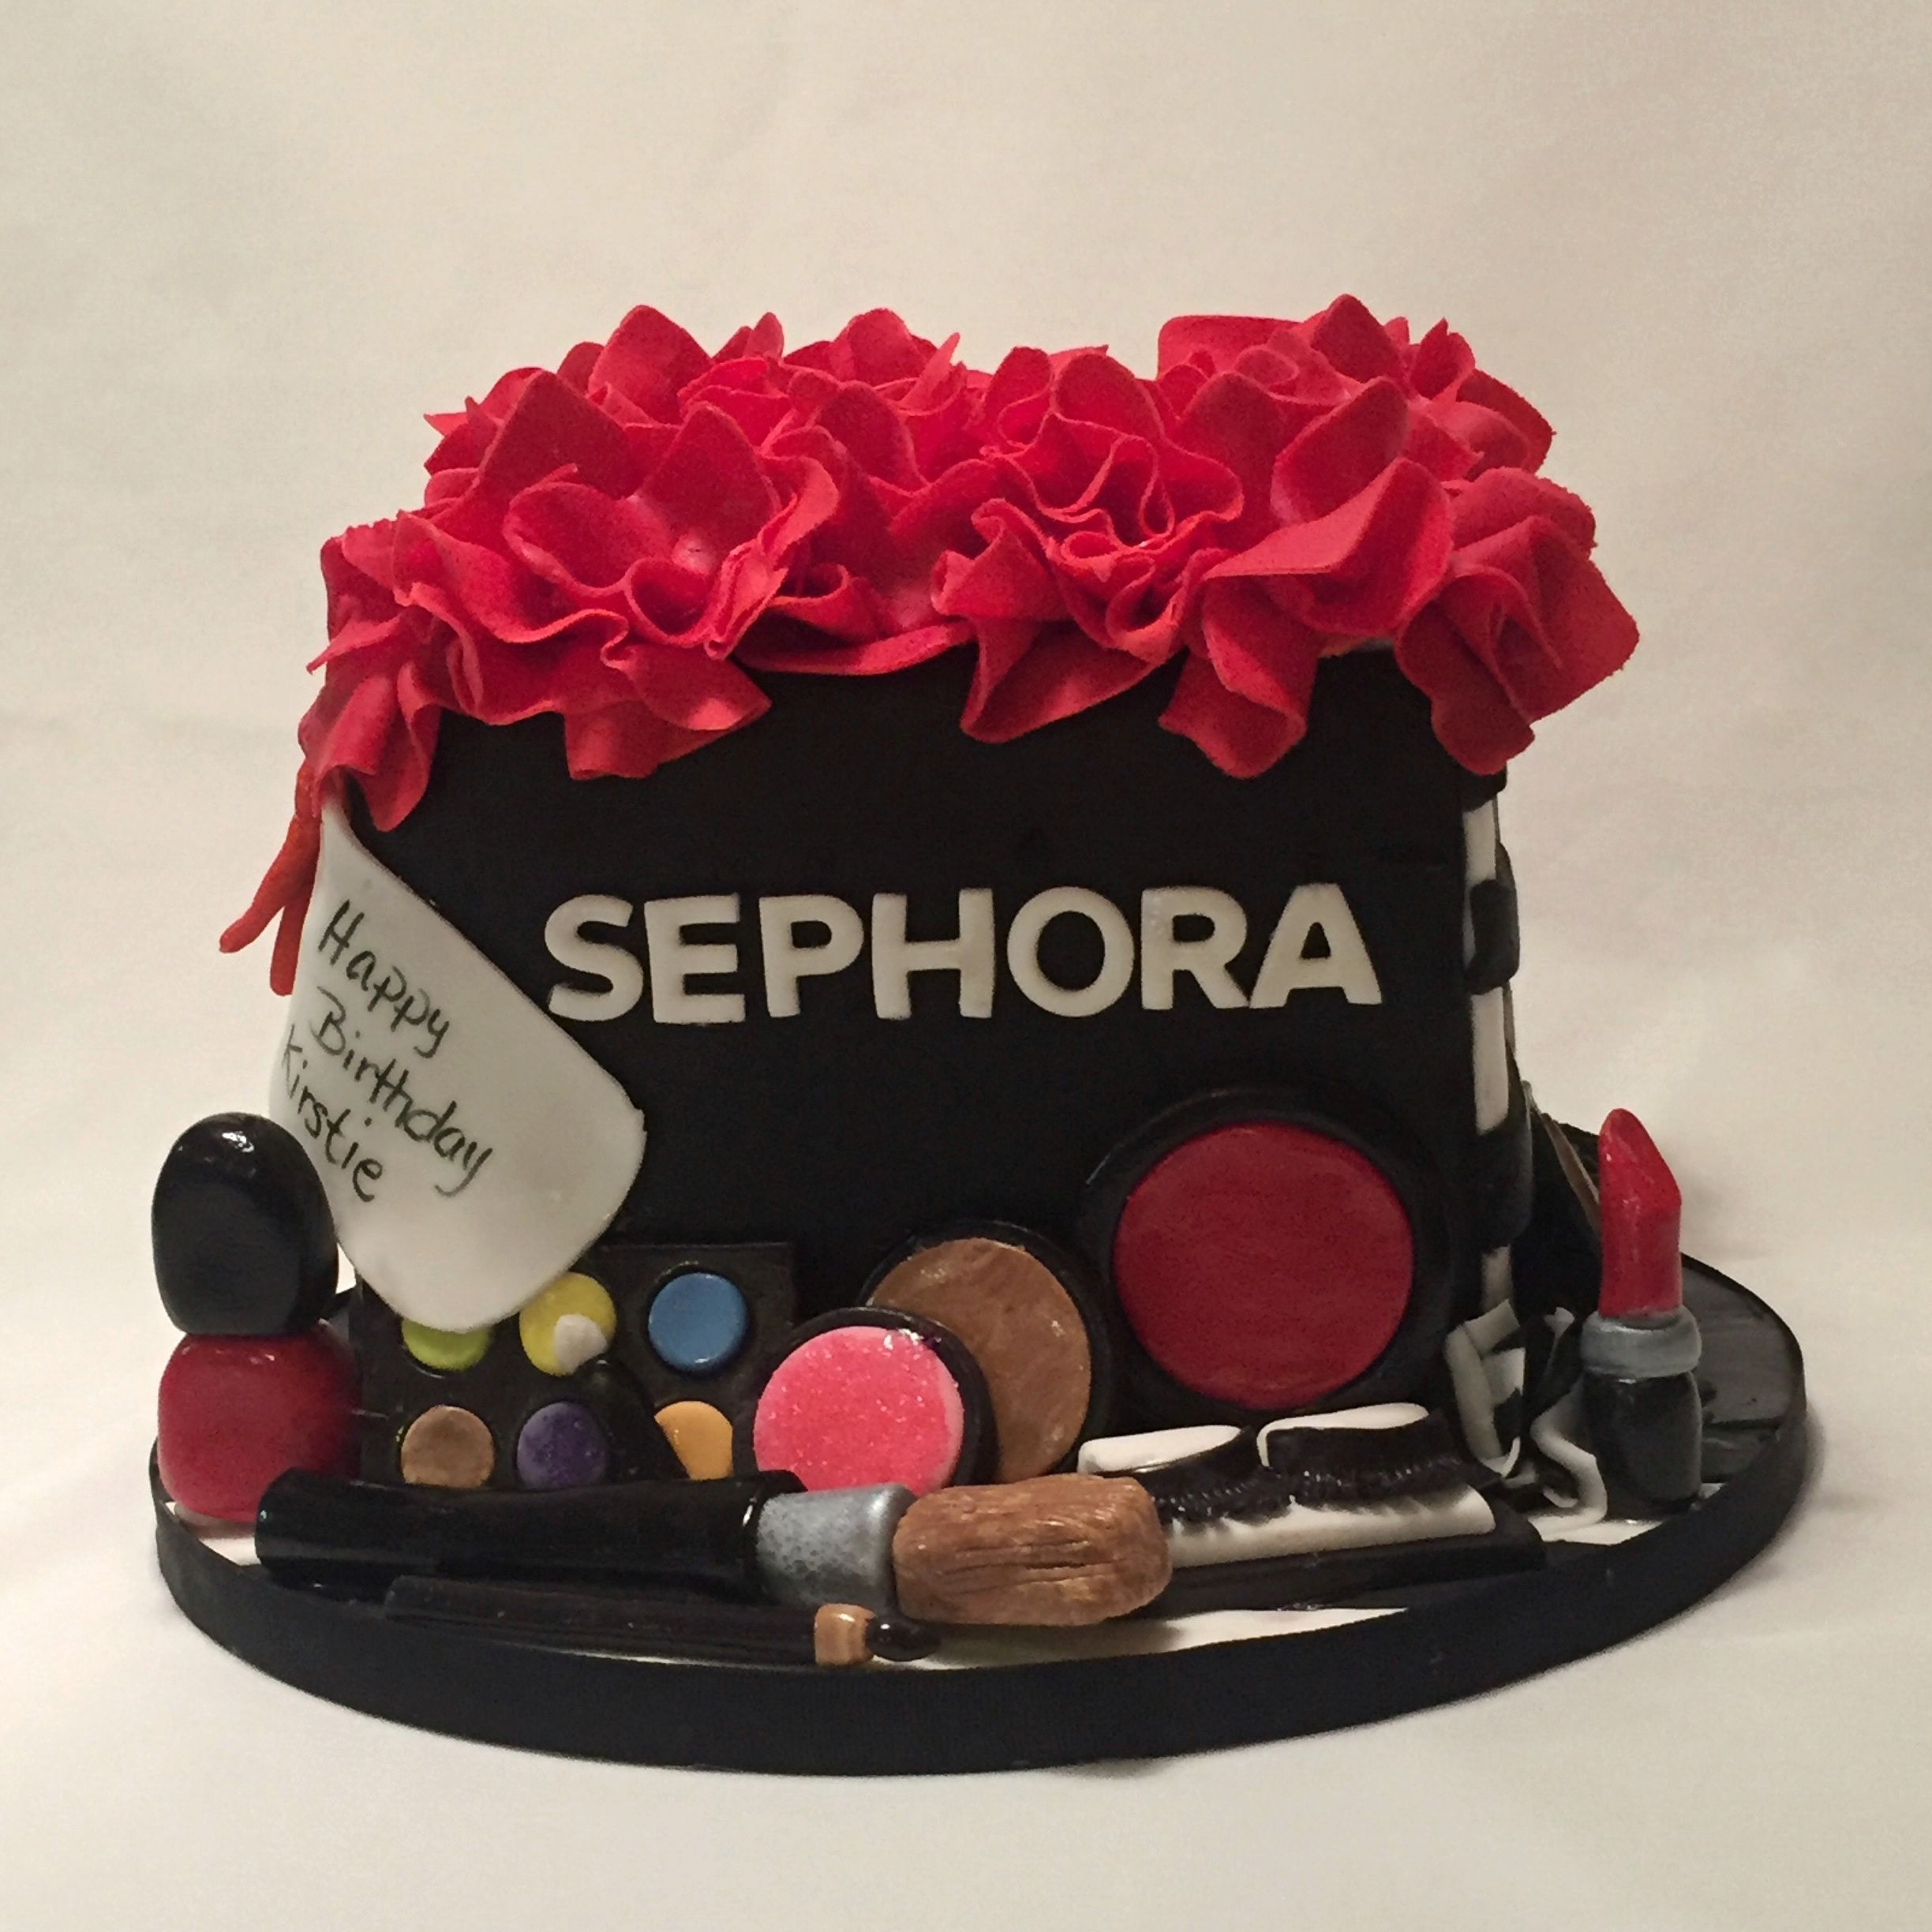 Sephora gift bag cake. Complete with edible makeup ...